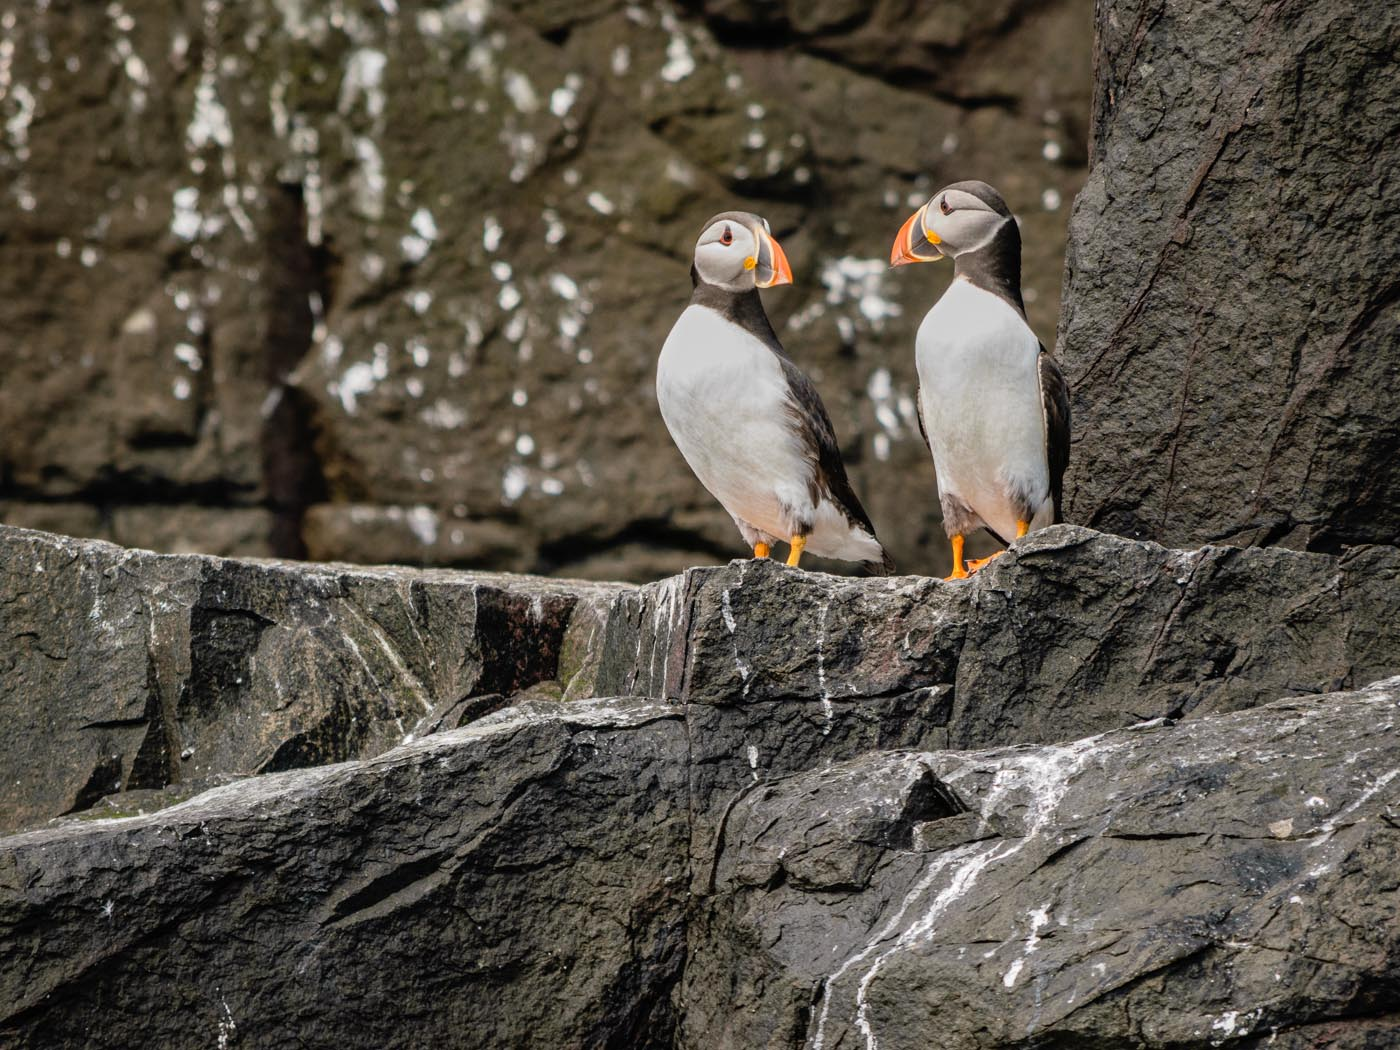 A pair of Chuffin Puffins